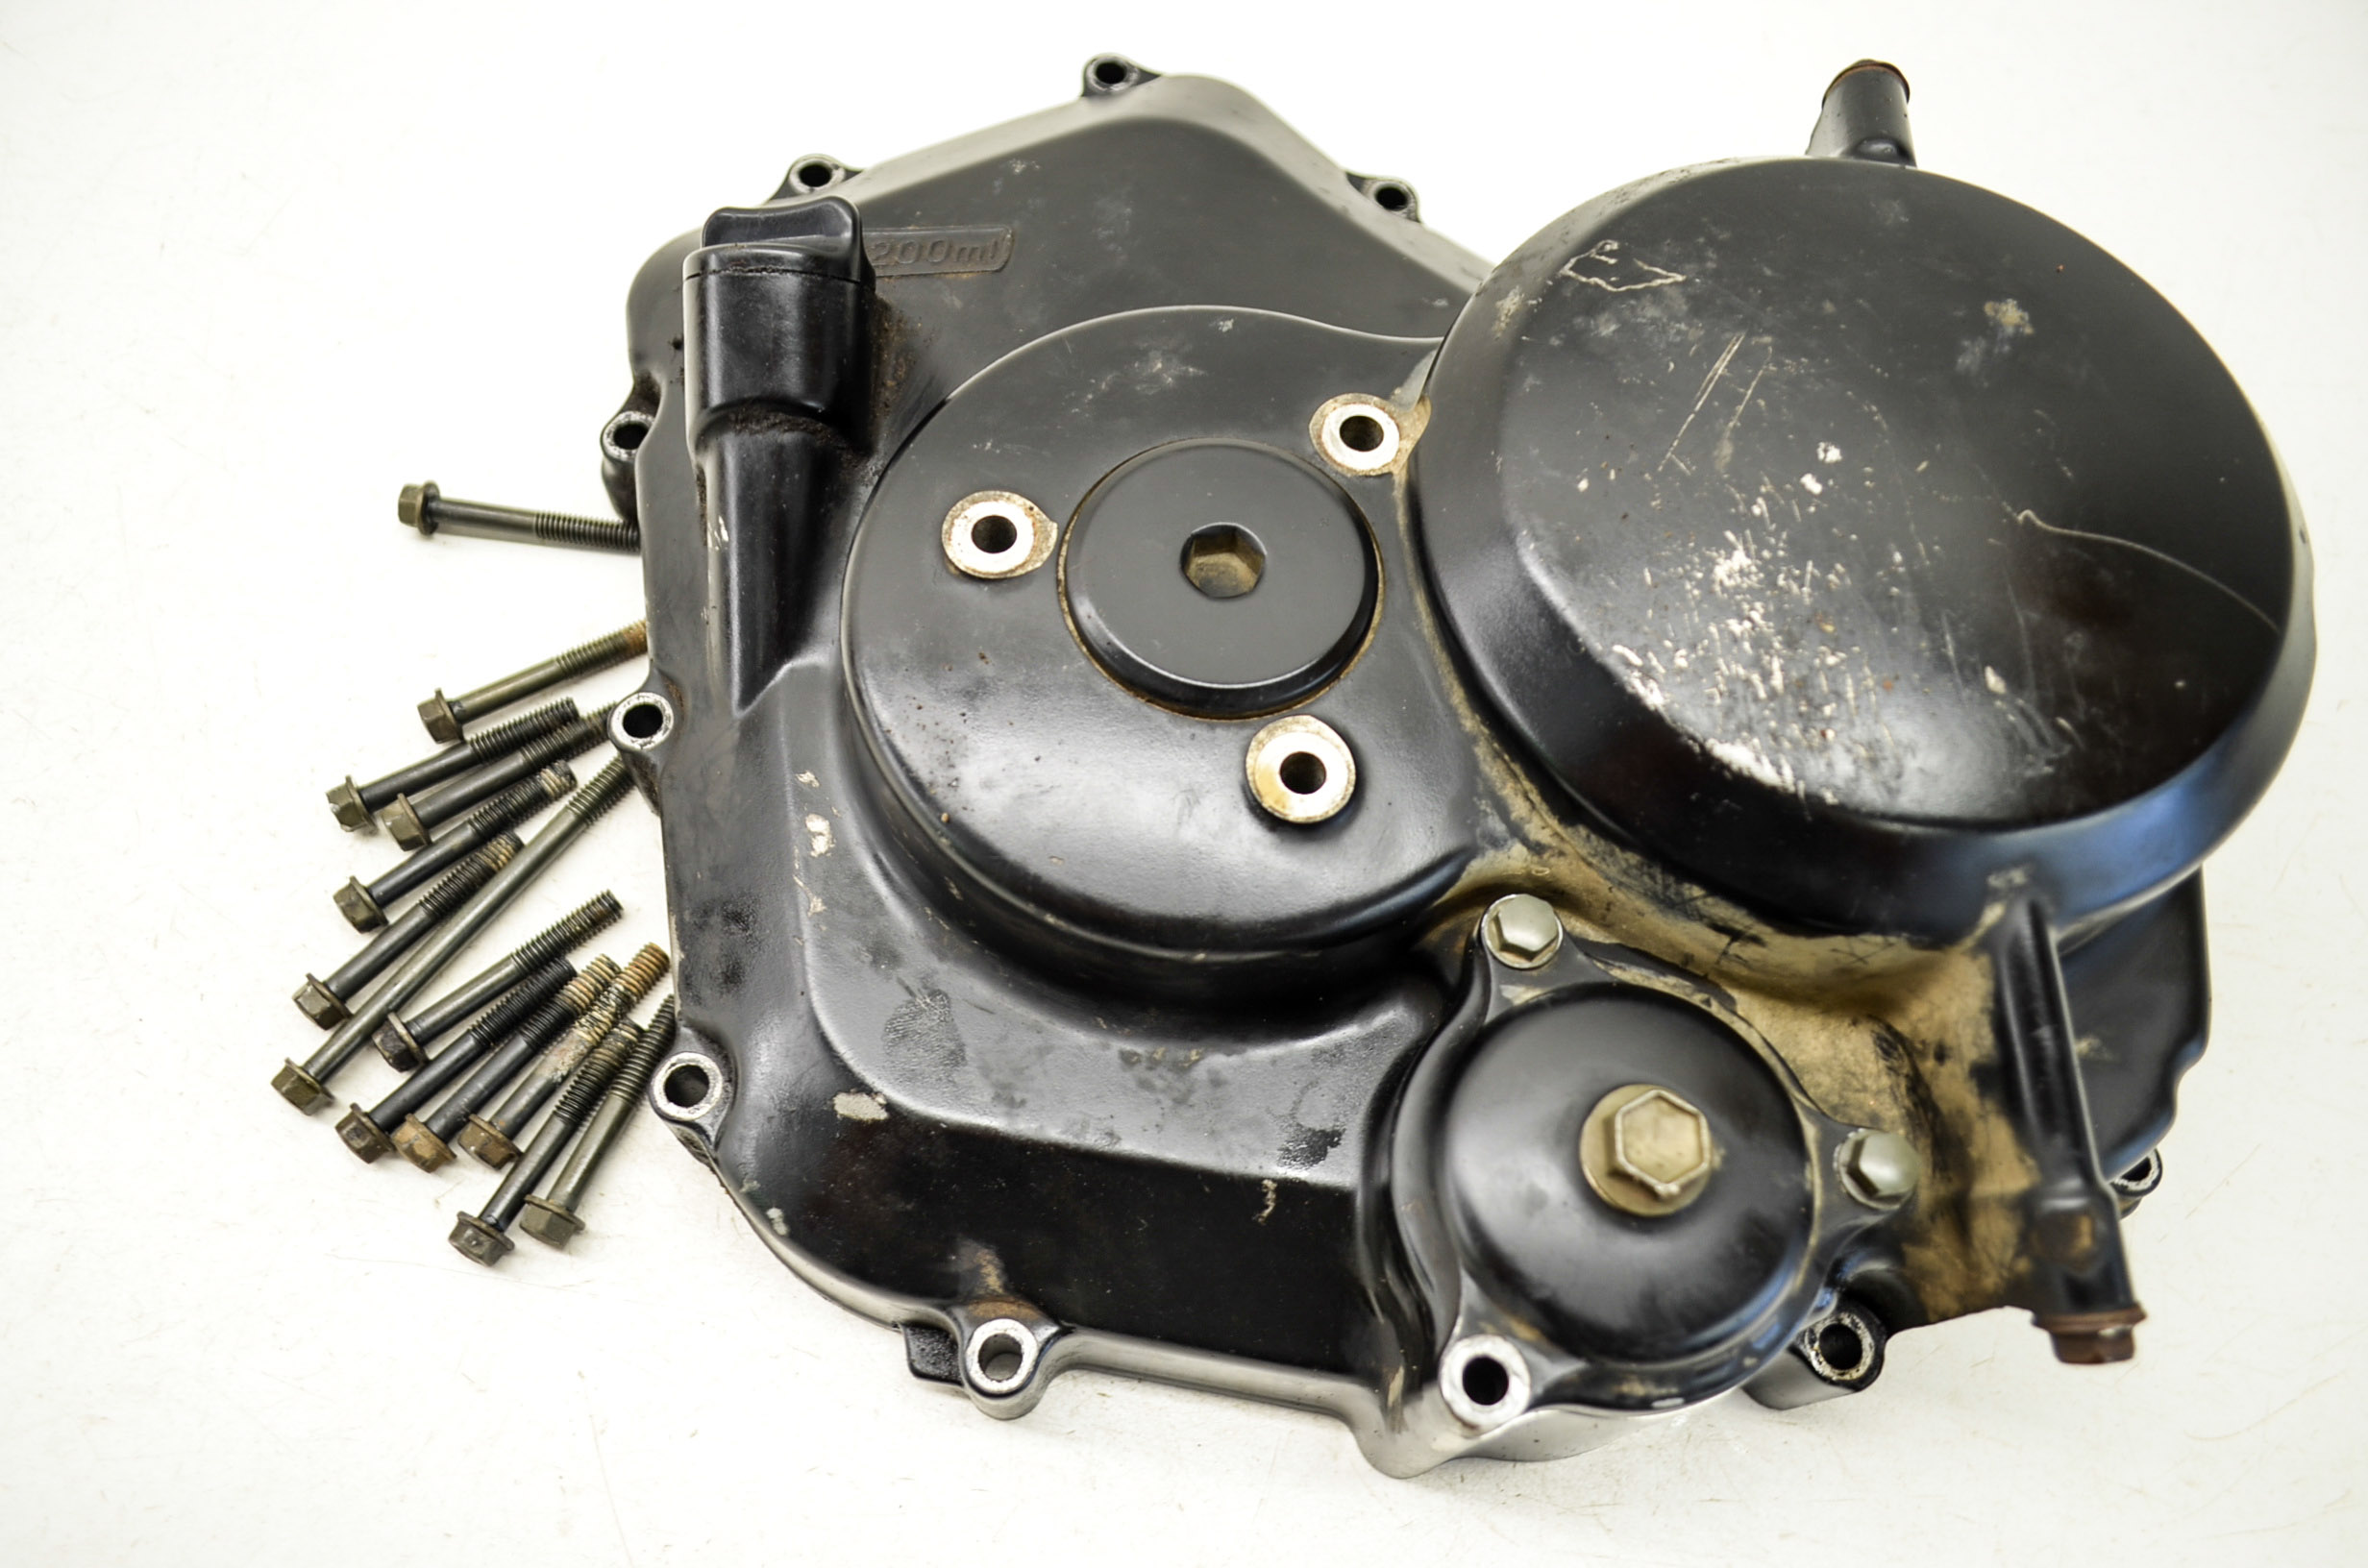 Suzuki Ozark 250 Clutch Diagram Carburetor Problems Wiring 02 Cover Ltf250 2x4 Ebay Parts